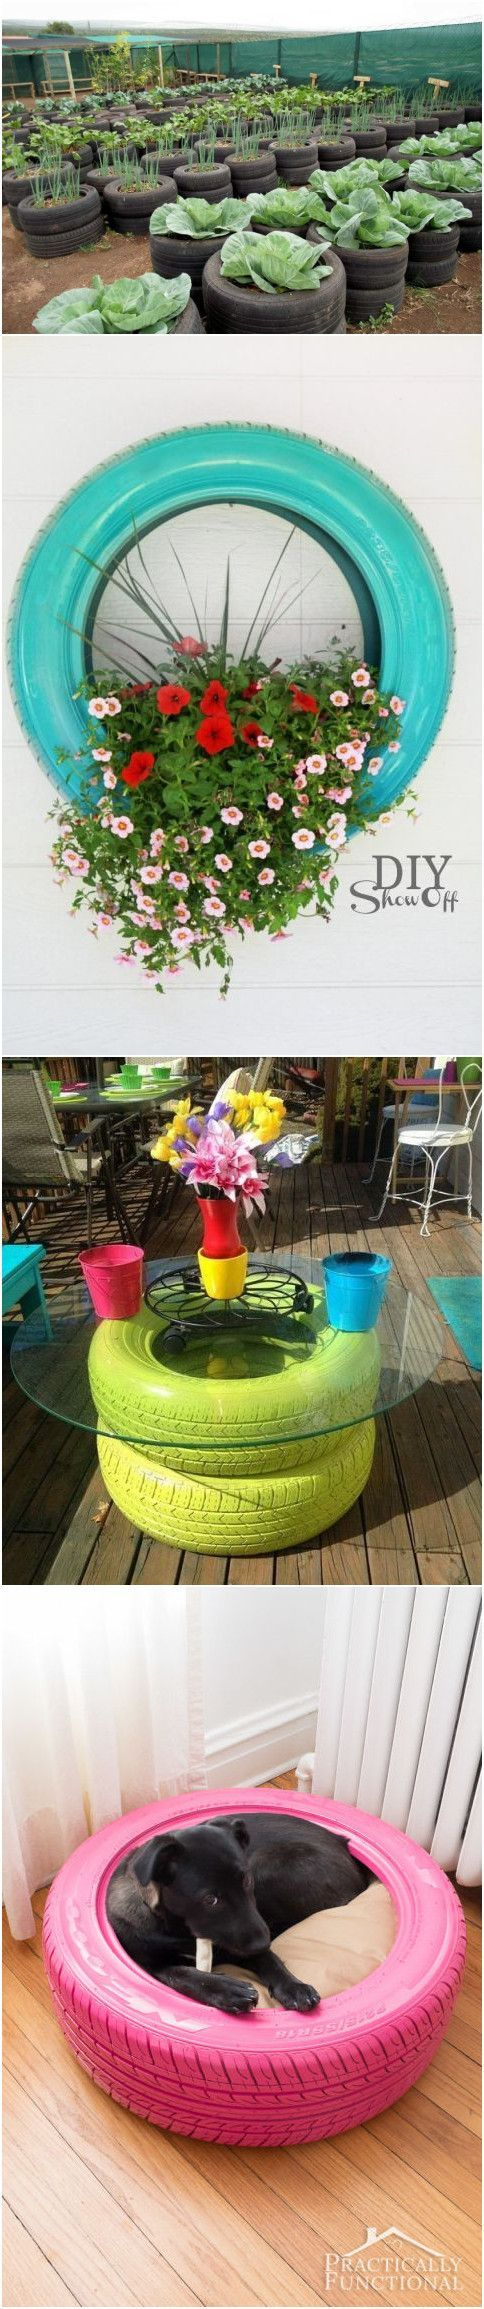 Raised garden beds out of old tires